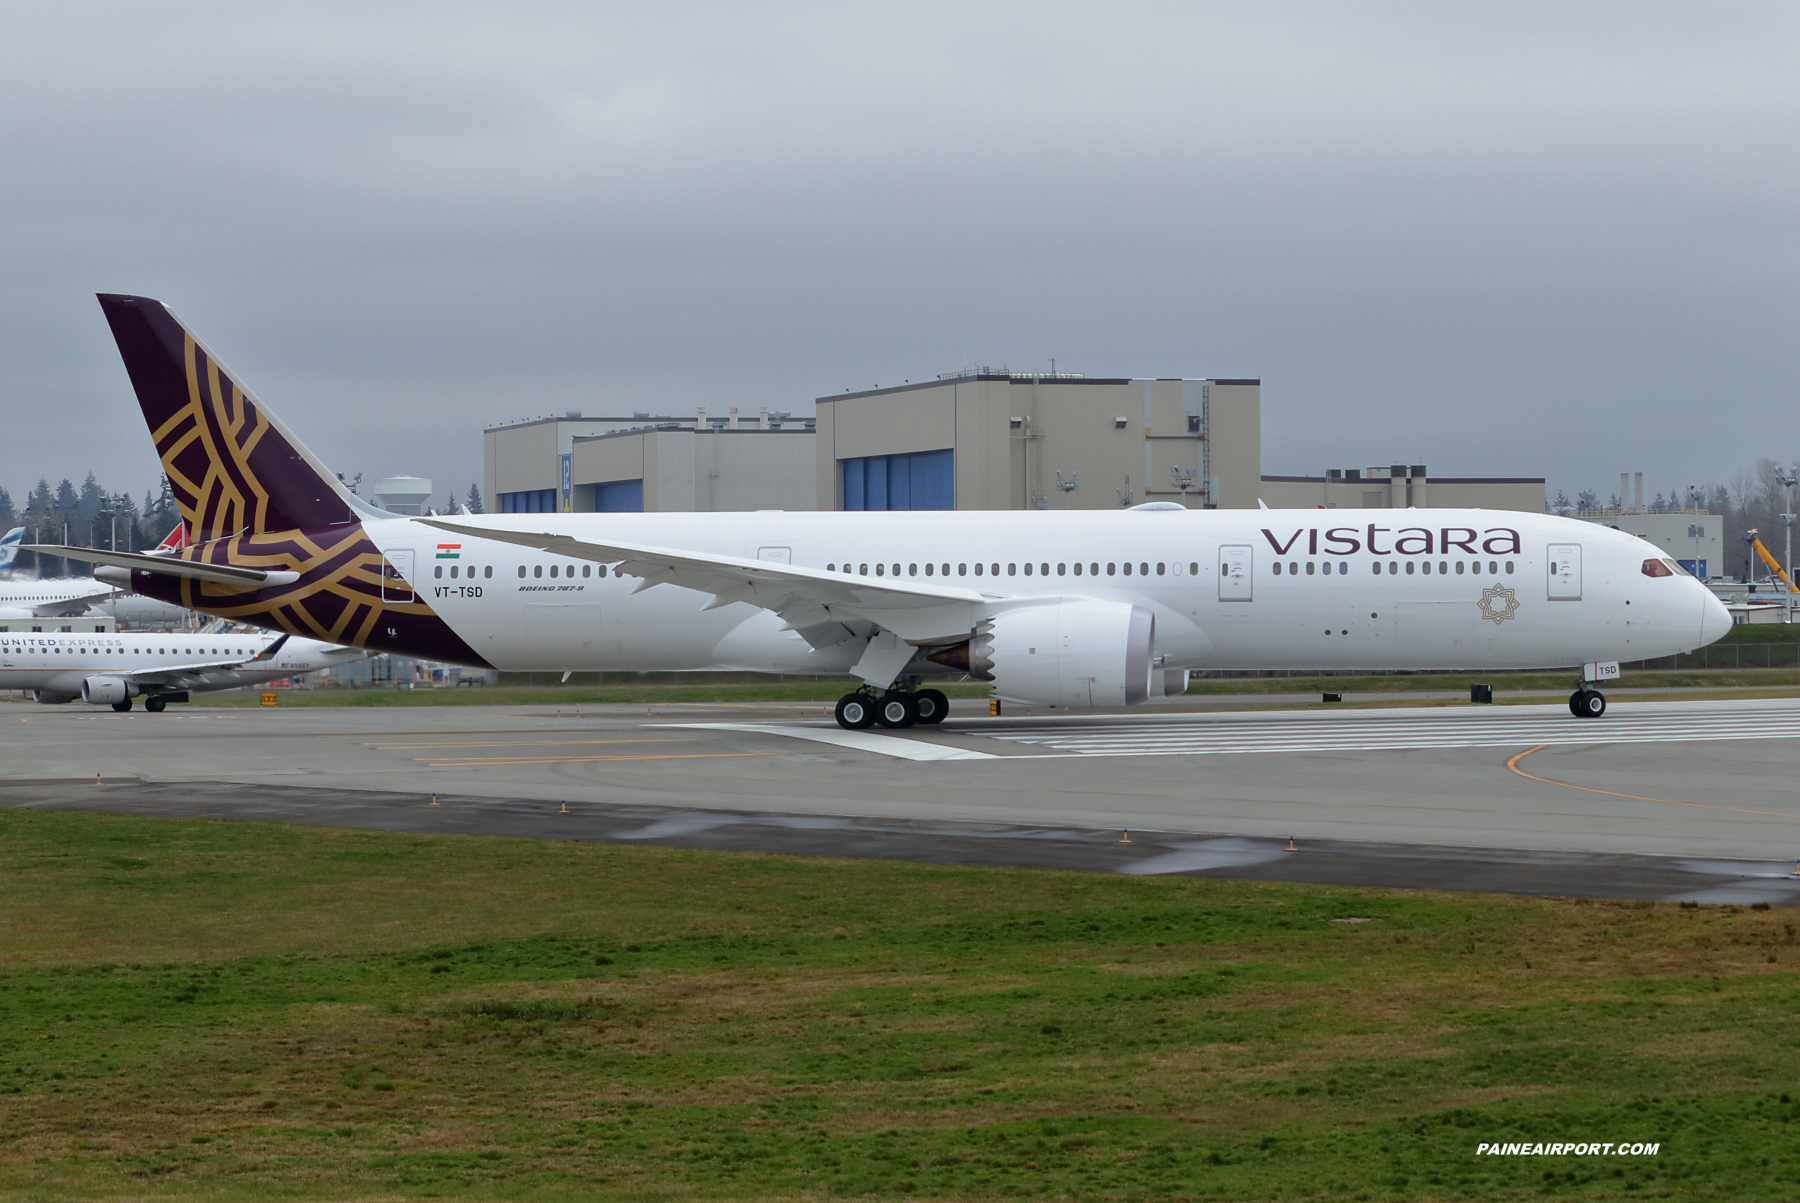 Vistara 787-9 VT-TSD at Paine Field